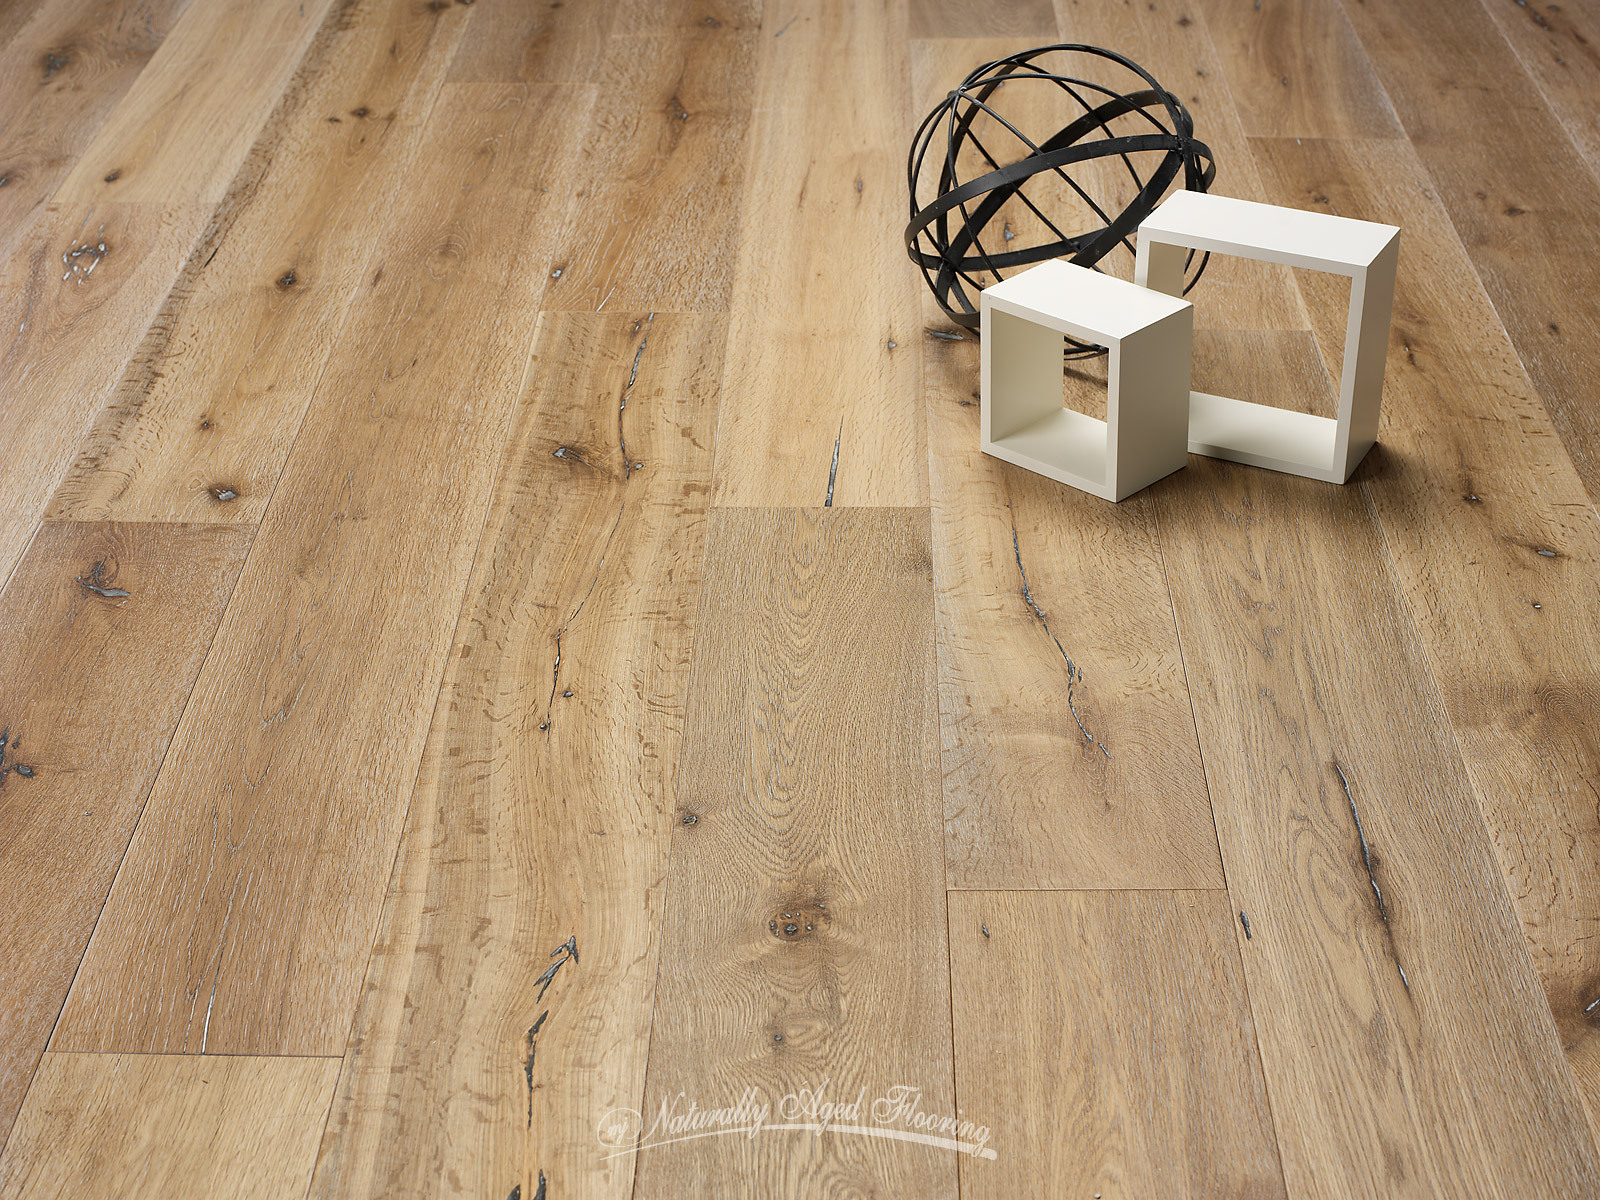 Naturally aged wood flooring installation carpet review for Donar oak flooring